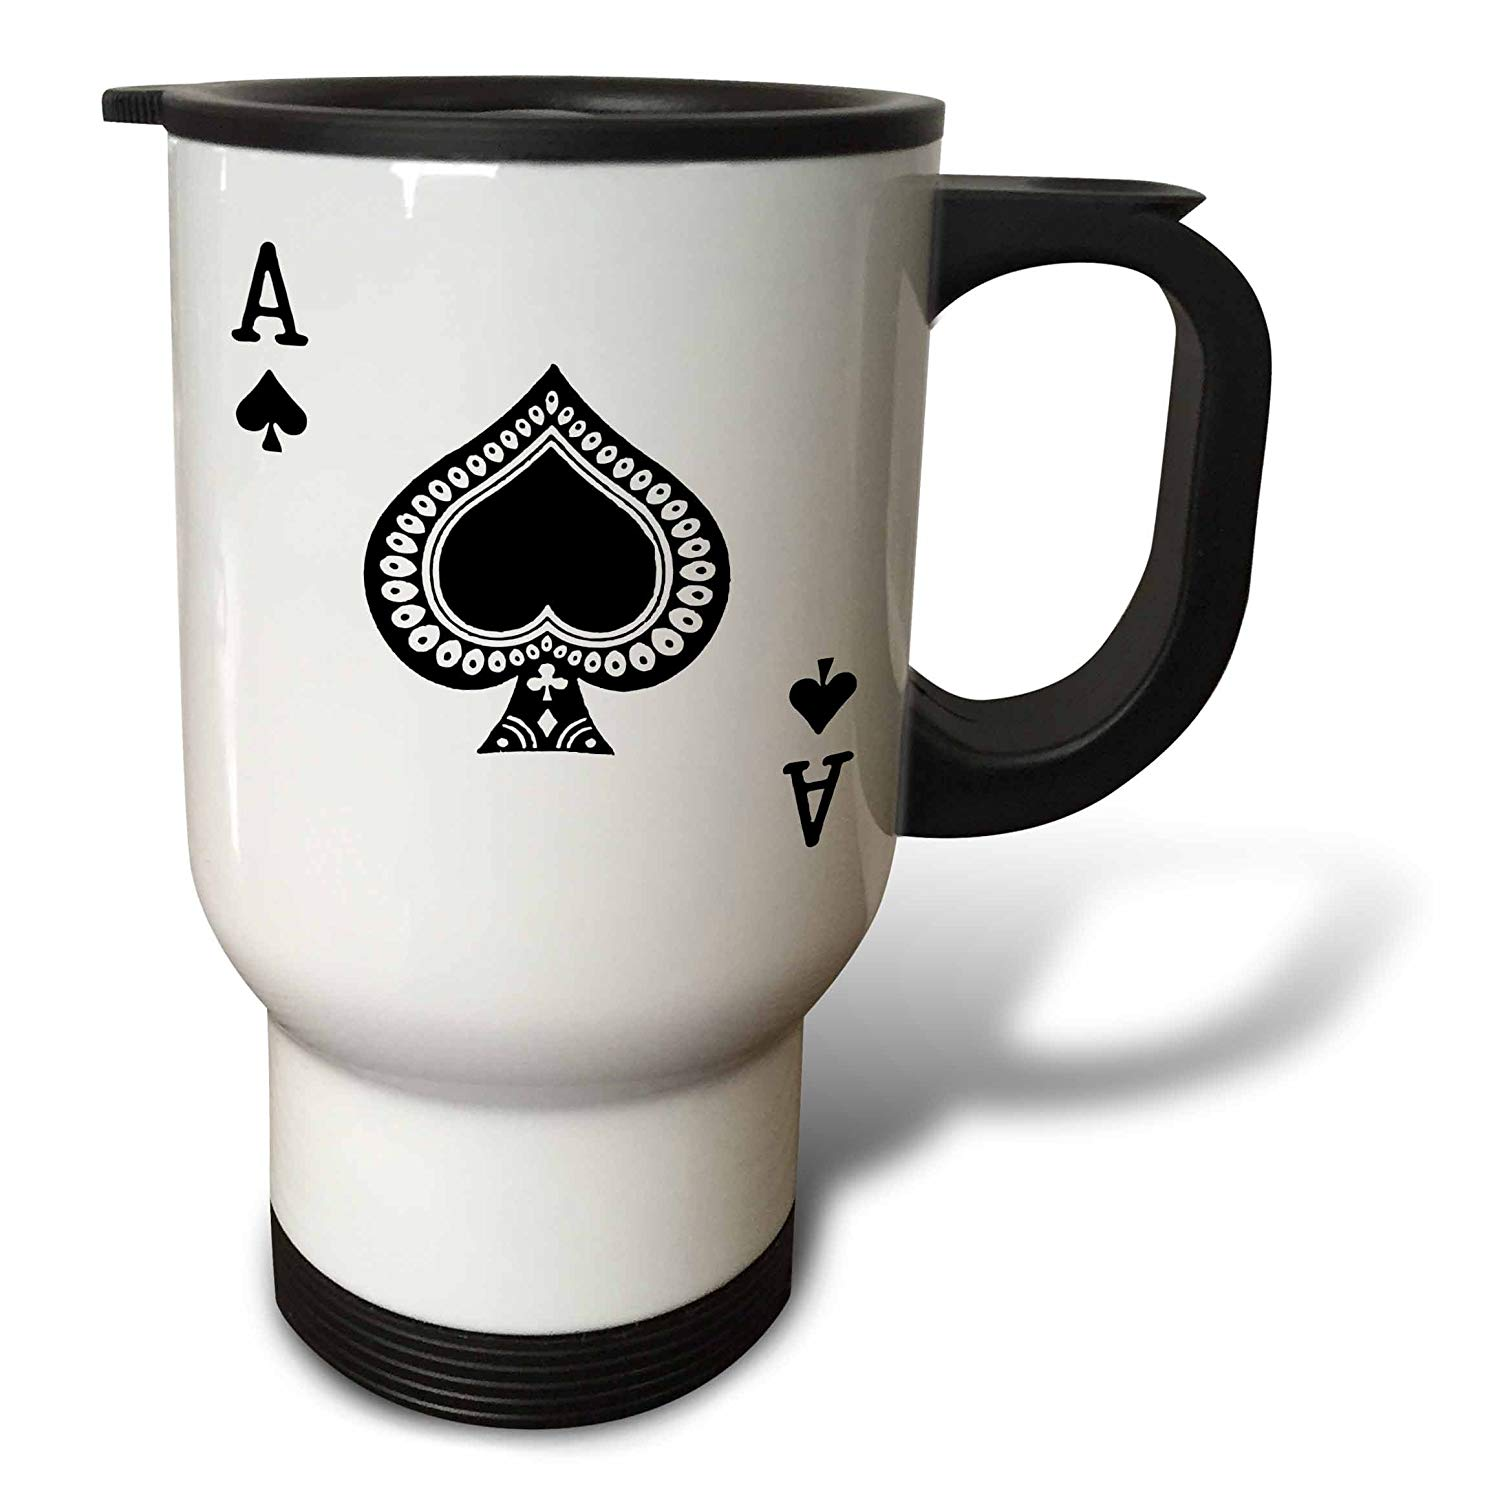 3dRose Ace of Spades Playing Card-Black Spade Suit Stainless Steel Travel Mug, 14-Ounce